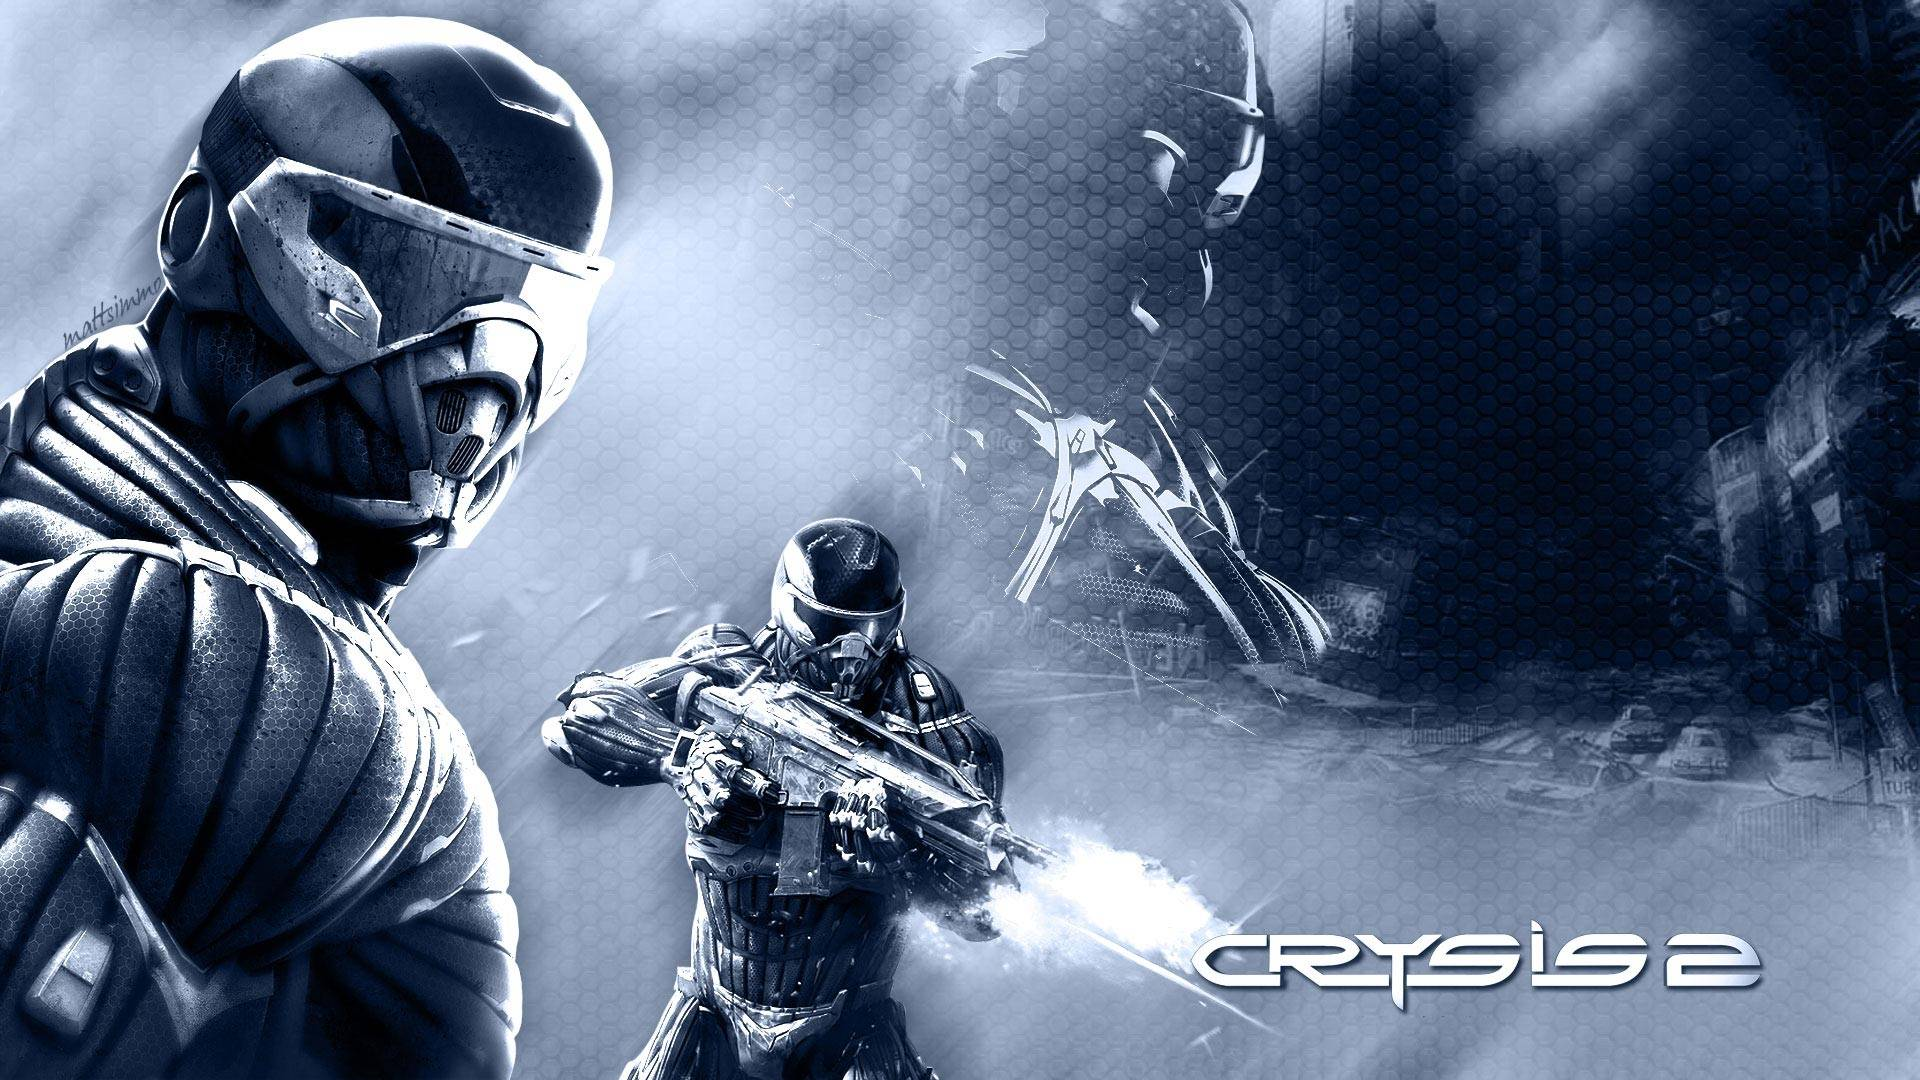 Crysis 2 Wallpapers In Full 1080P HD